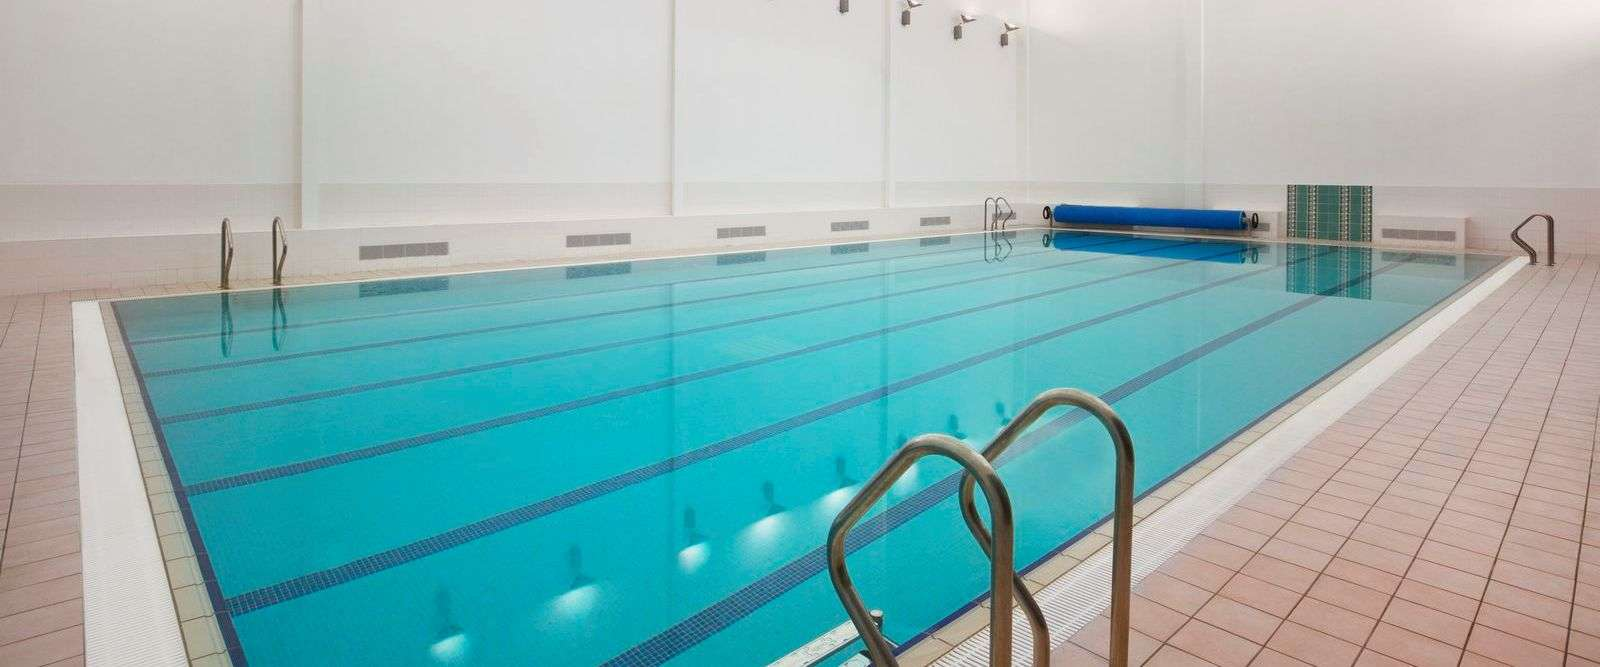 Indoor pool carnbeg hotel dundalk carnbeg hotel - Hotels in dundalk with swimming pool ...